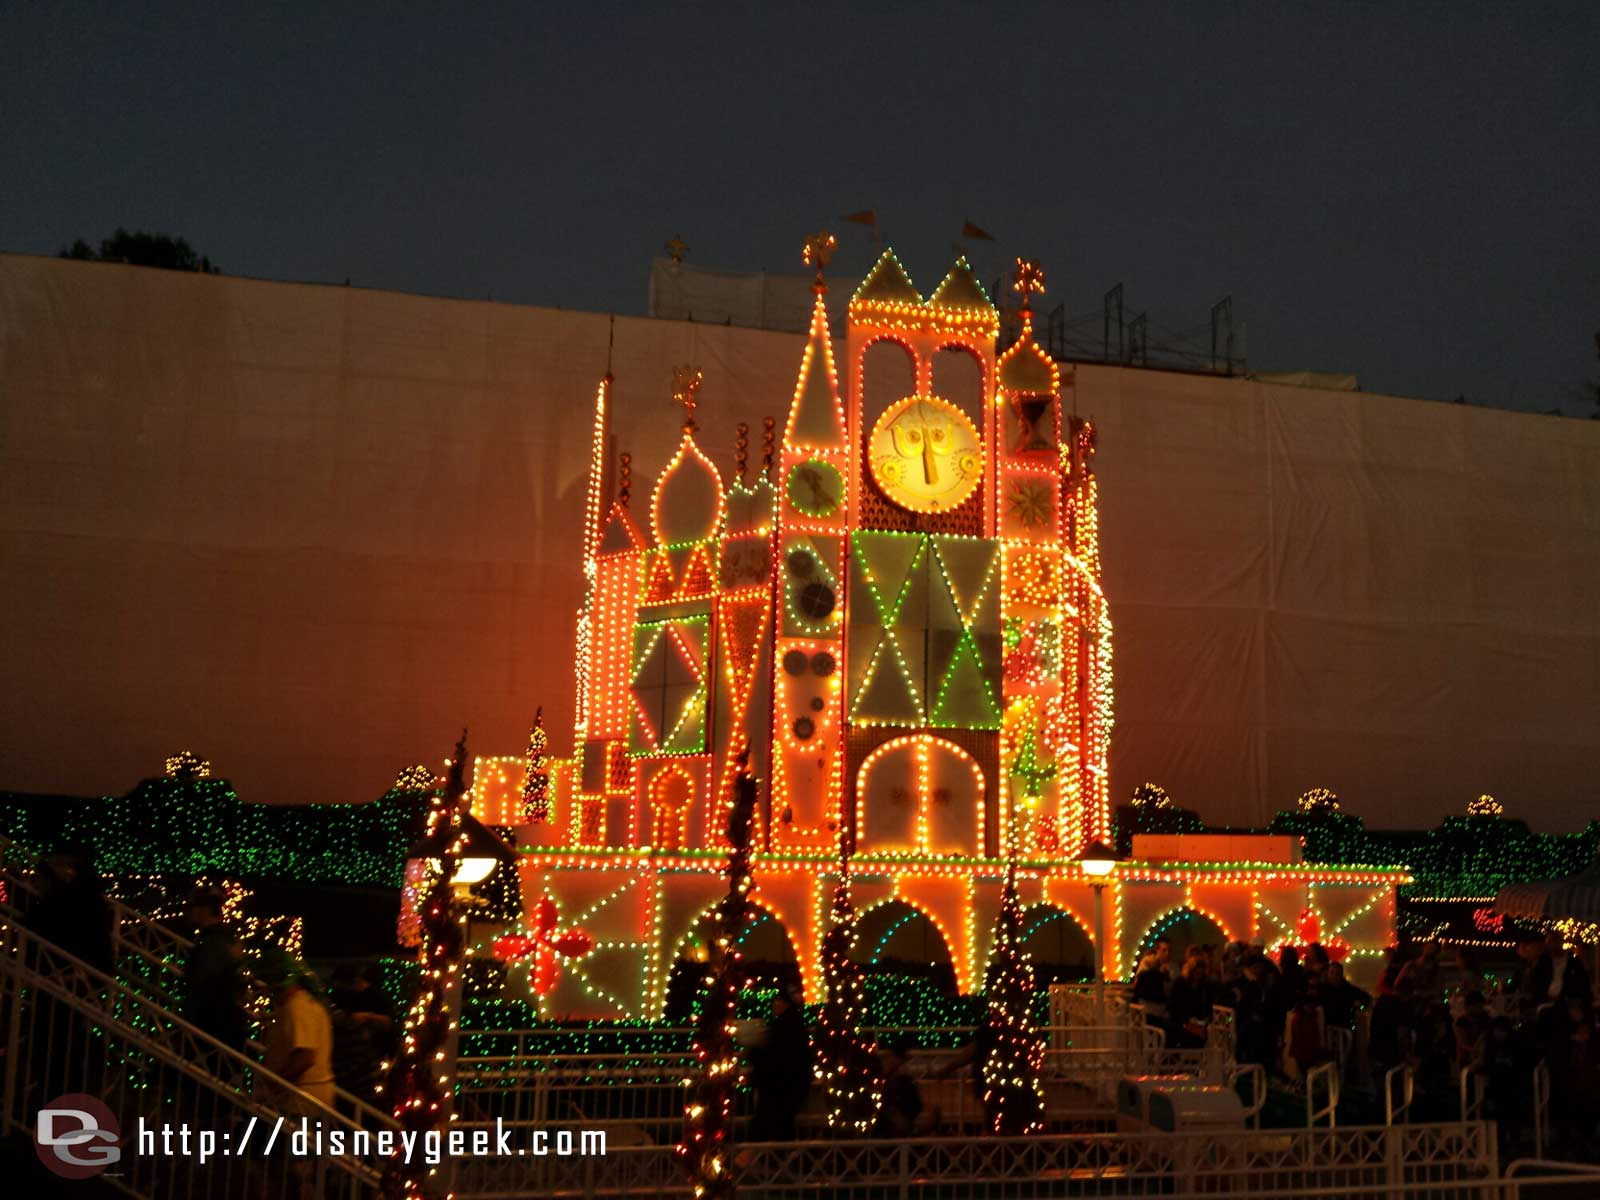 The portions of Small World that are not covered have Christmas lights on this evening still #Disneyland